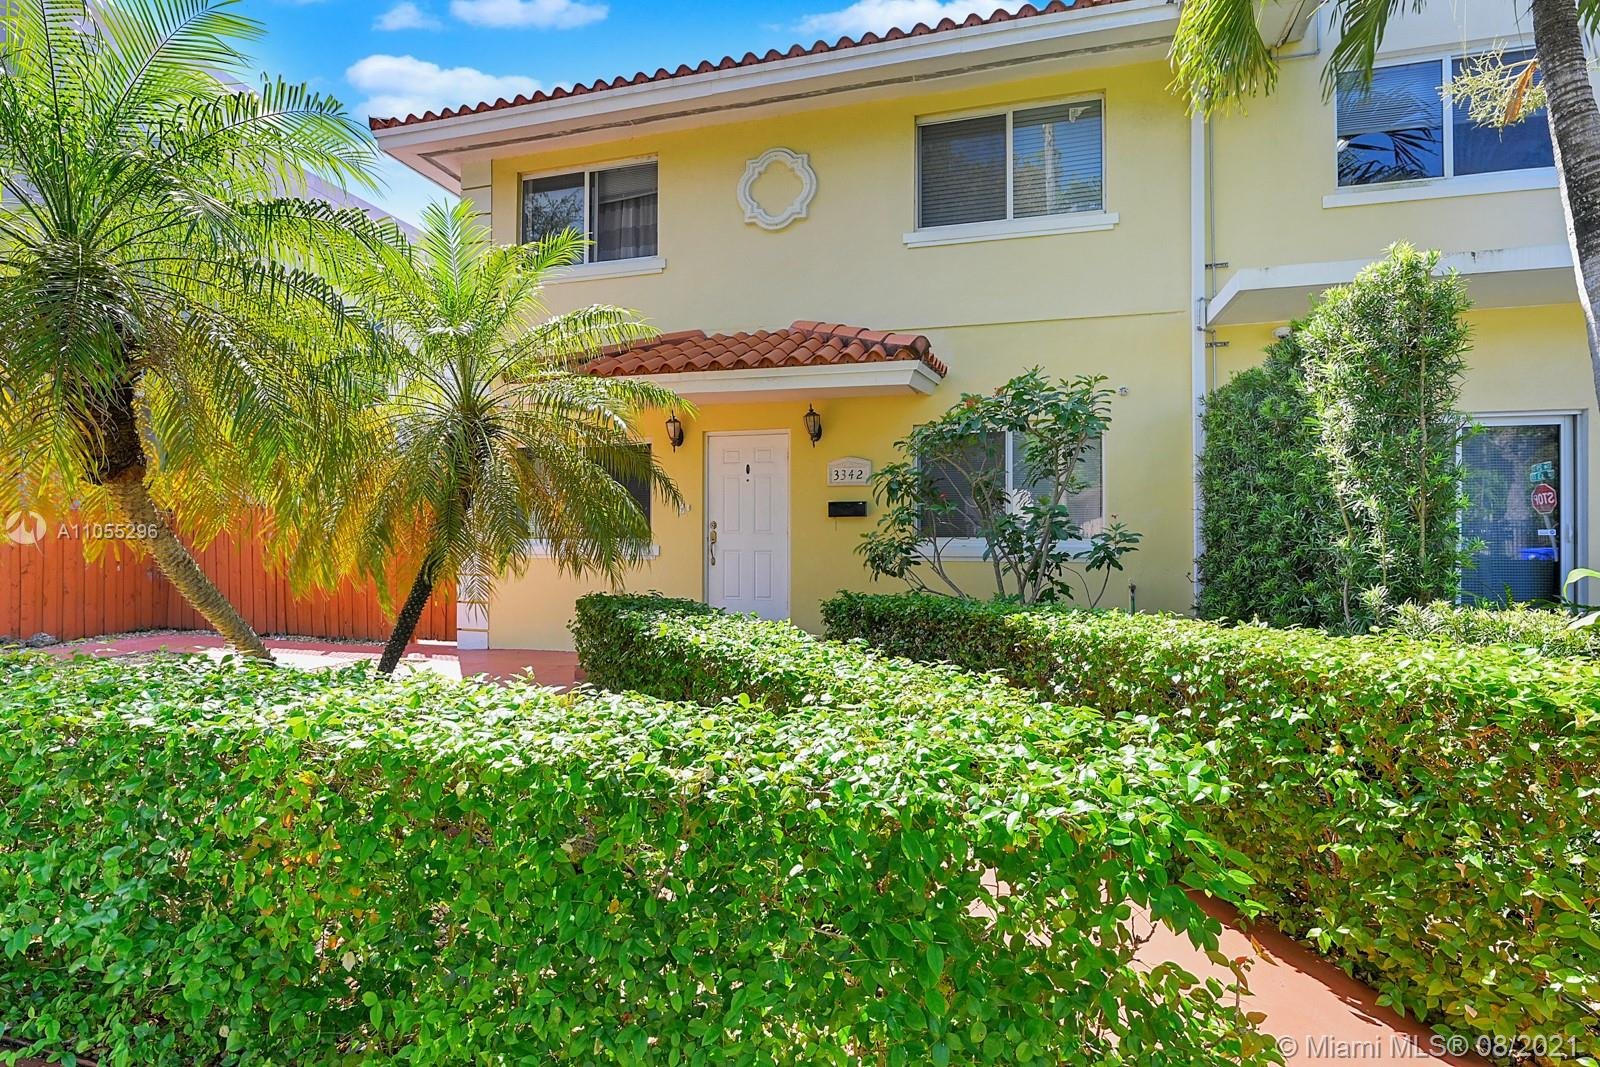 Don't miss a piece of the Miami Lifestyle, Villa Toscana located in the #1 State in USA, Consisting of 6bed/5 bath , Main House 4//3 •plus 2/2 in-laws each with individual entrance, in essence your buying 2 units for the price of 1. Hurricane Impact Windows & Doors. Located within 2-18 minutes to 3 Marinas •Coconut Grove •Downtown Miami •Brickell •Key Biscayne •4 beaches •Water sports •Shopping •Dinning Income potential as a short-term rental is amazing, Next door 3340, is as follows 7bd/5ba + in-law quarter 2/1.5 Makes TOTAL of 13 bed + 10.5 baths, Plenty of parking, Have the best of both worlds enjoyment & Making a huge return on Investment. Appointment Only. NOW EACH SIDE HAS ITS OWN FOLIO #, BUY 1 OR BOTH.  see A11054763, A11016647